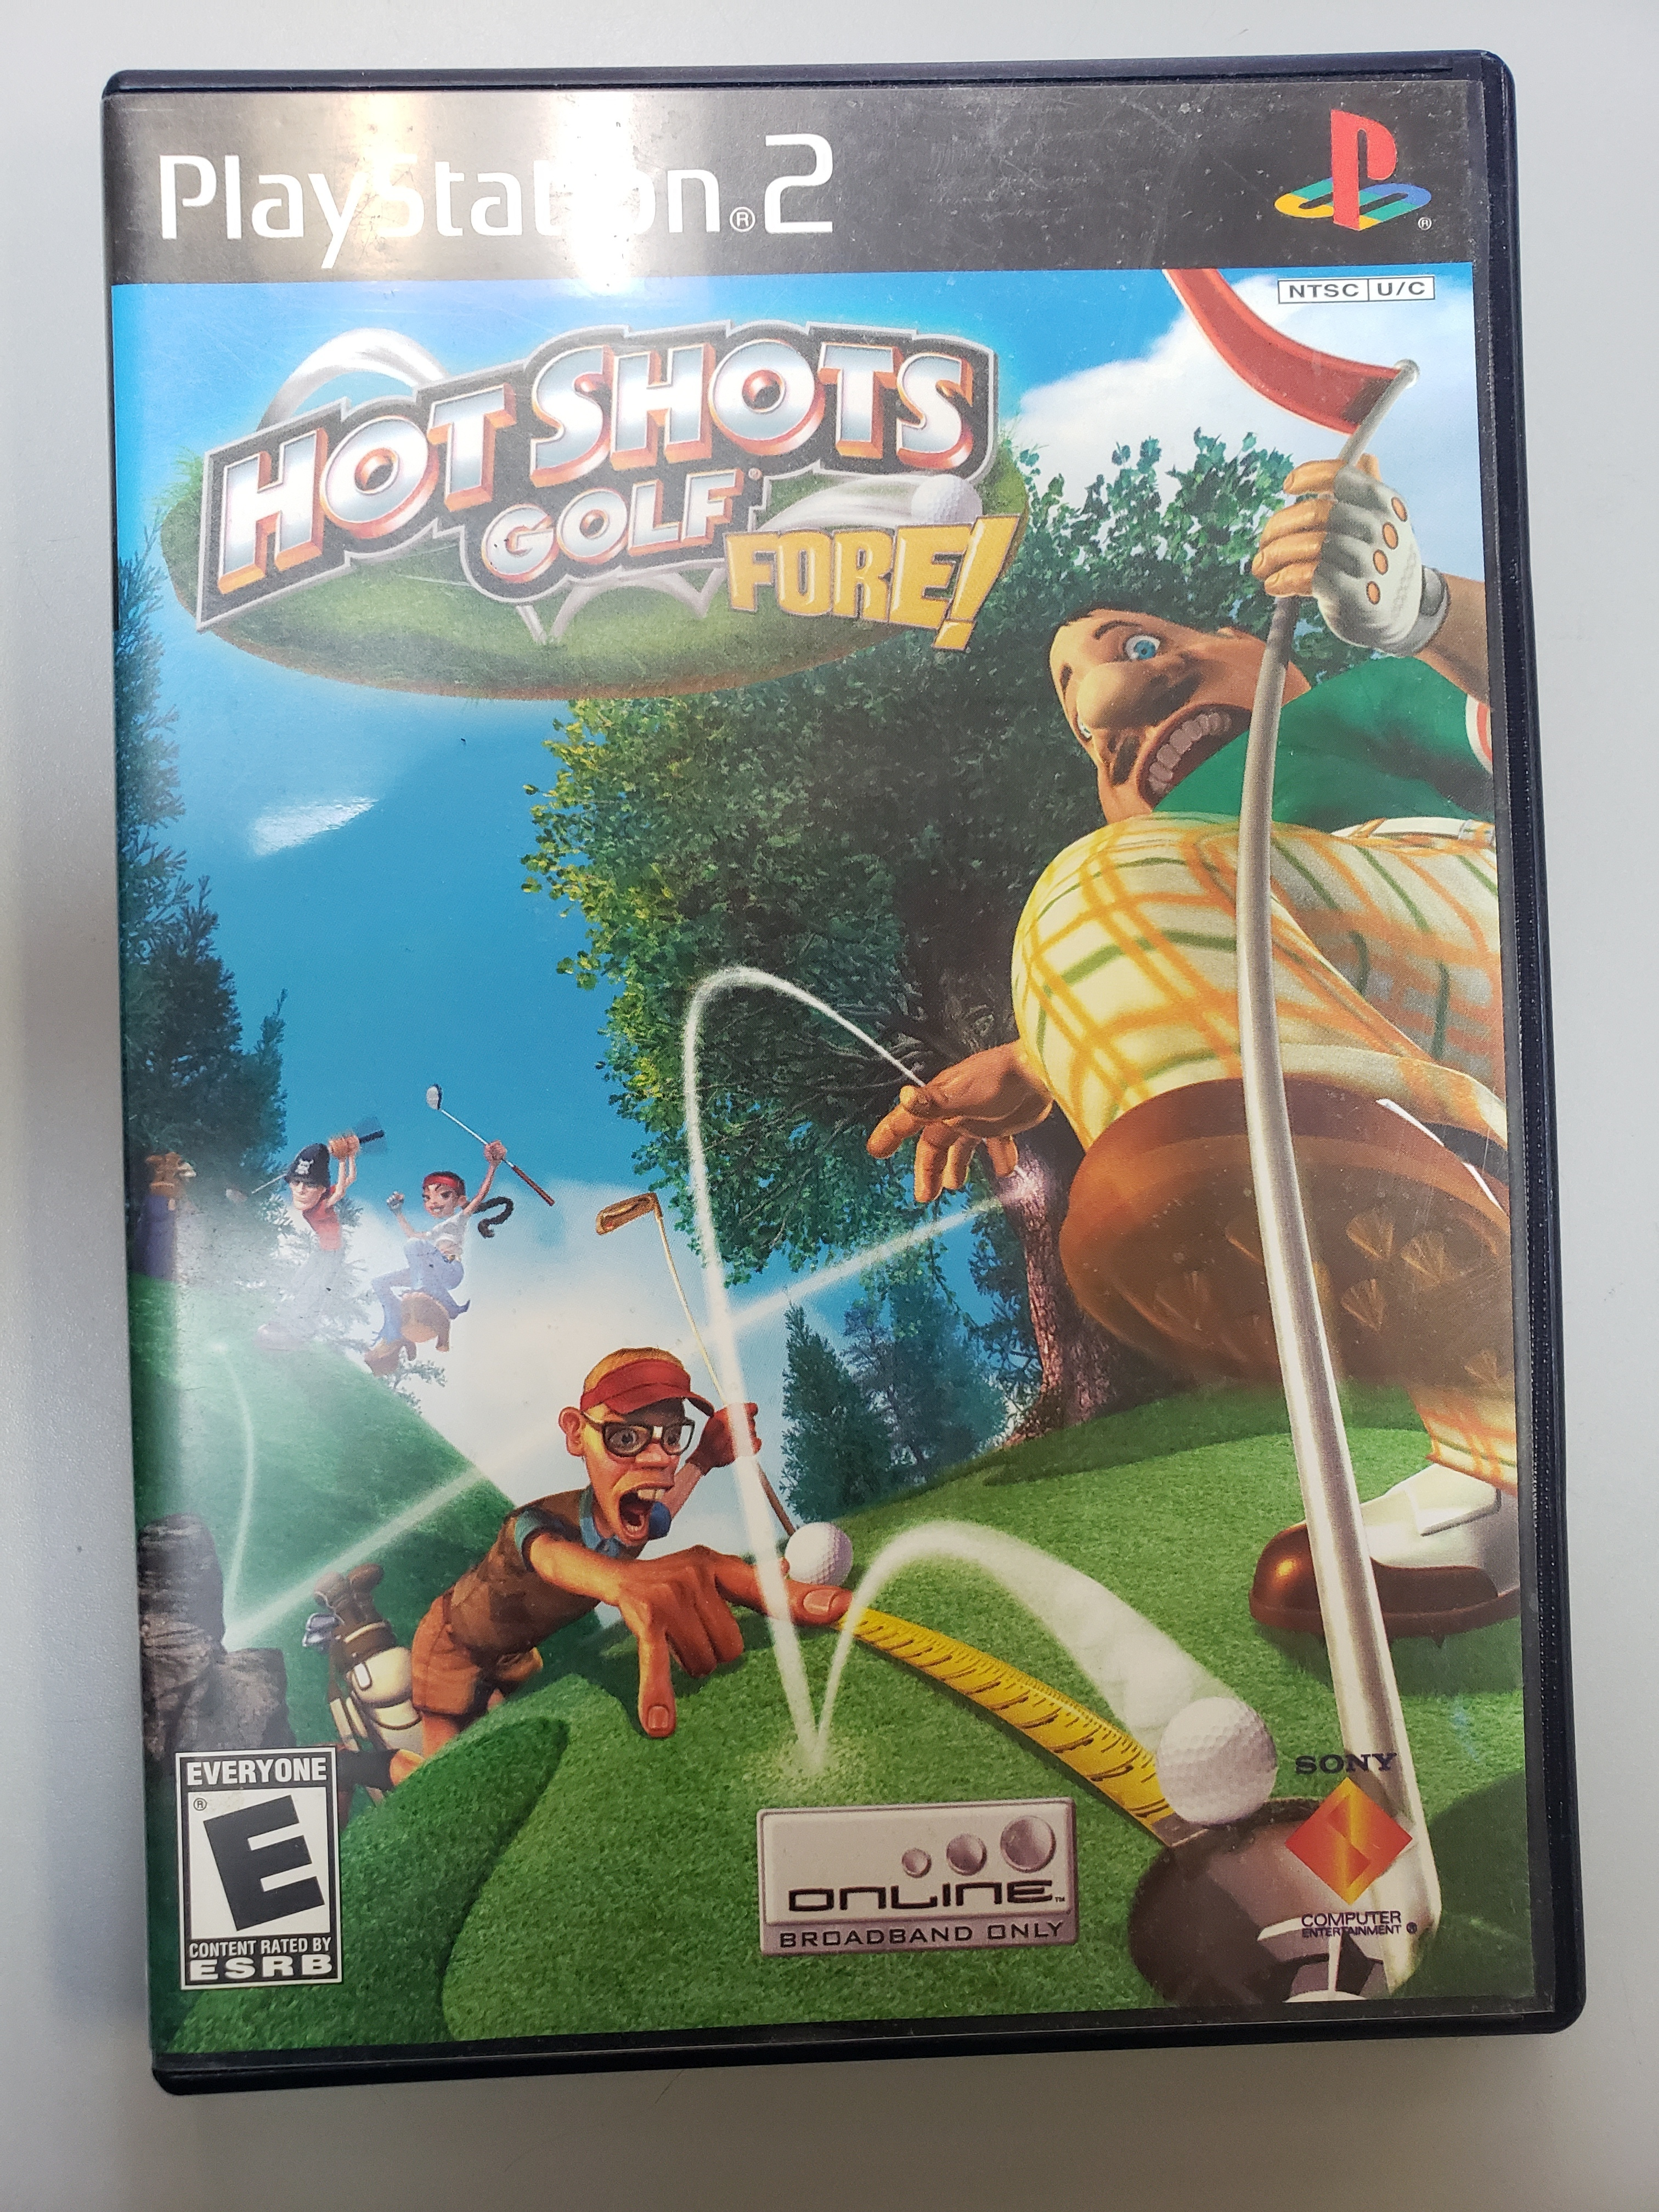 HOT SHOTS GOLF: FORE! - PS2 GAME